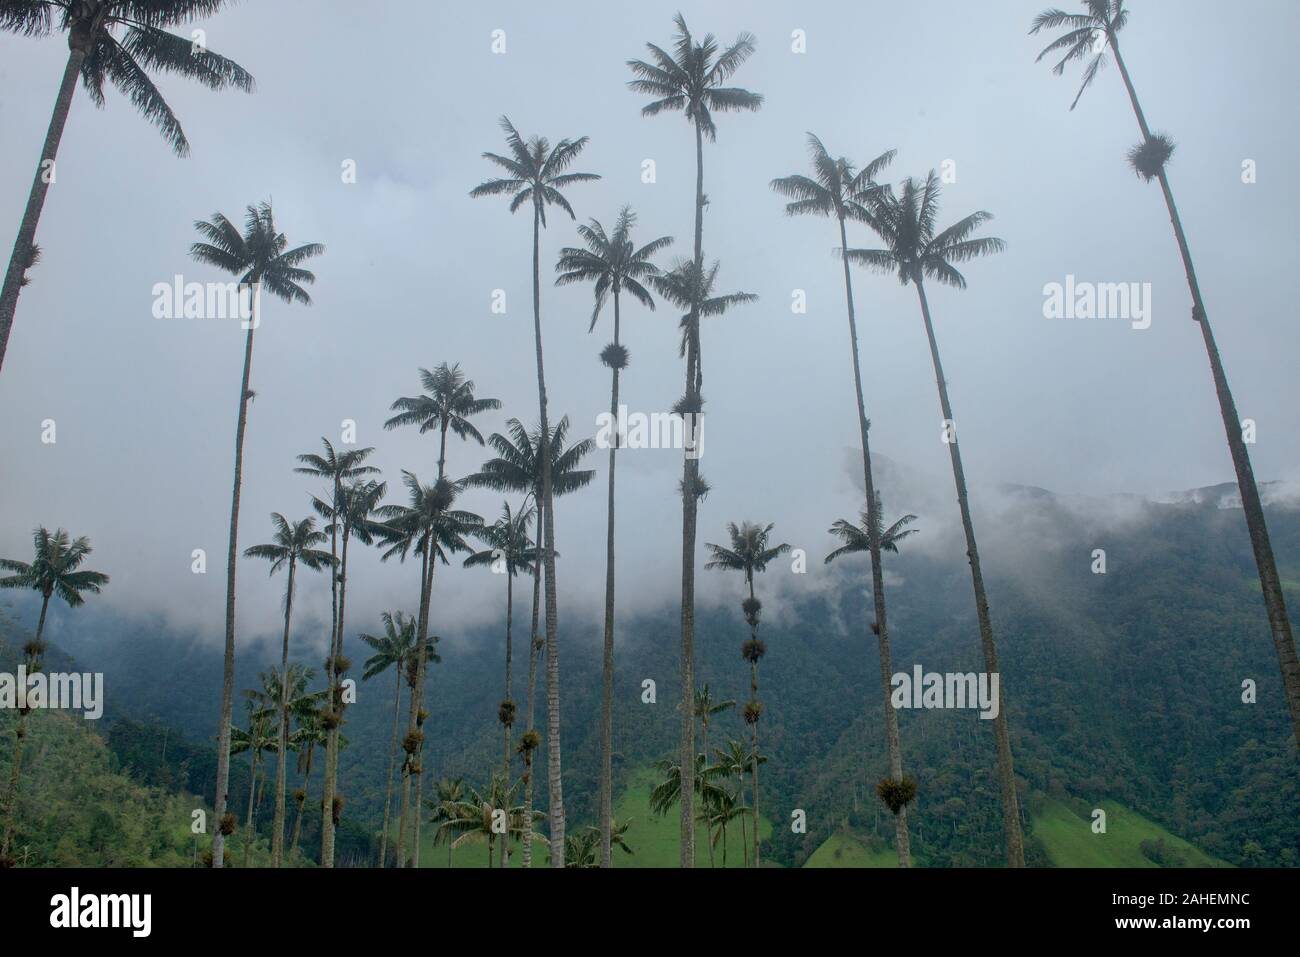 Wax palms (Ceroxylon quindiuense), the tallest palms in the world, Cocora Valley, Salento, Colombia Stock Photo